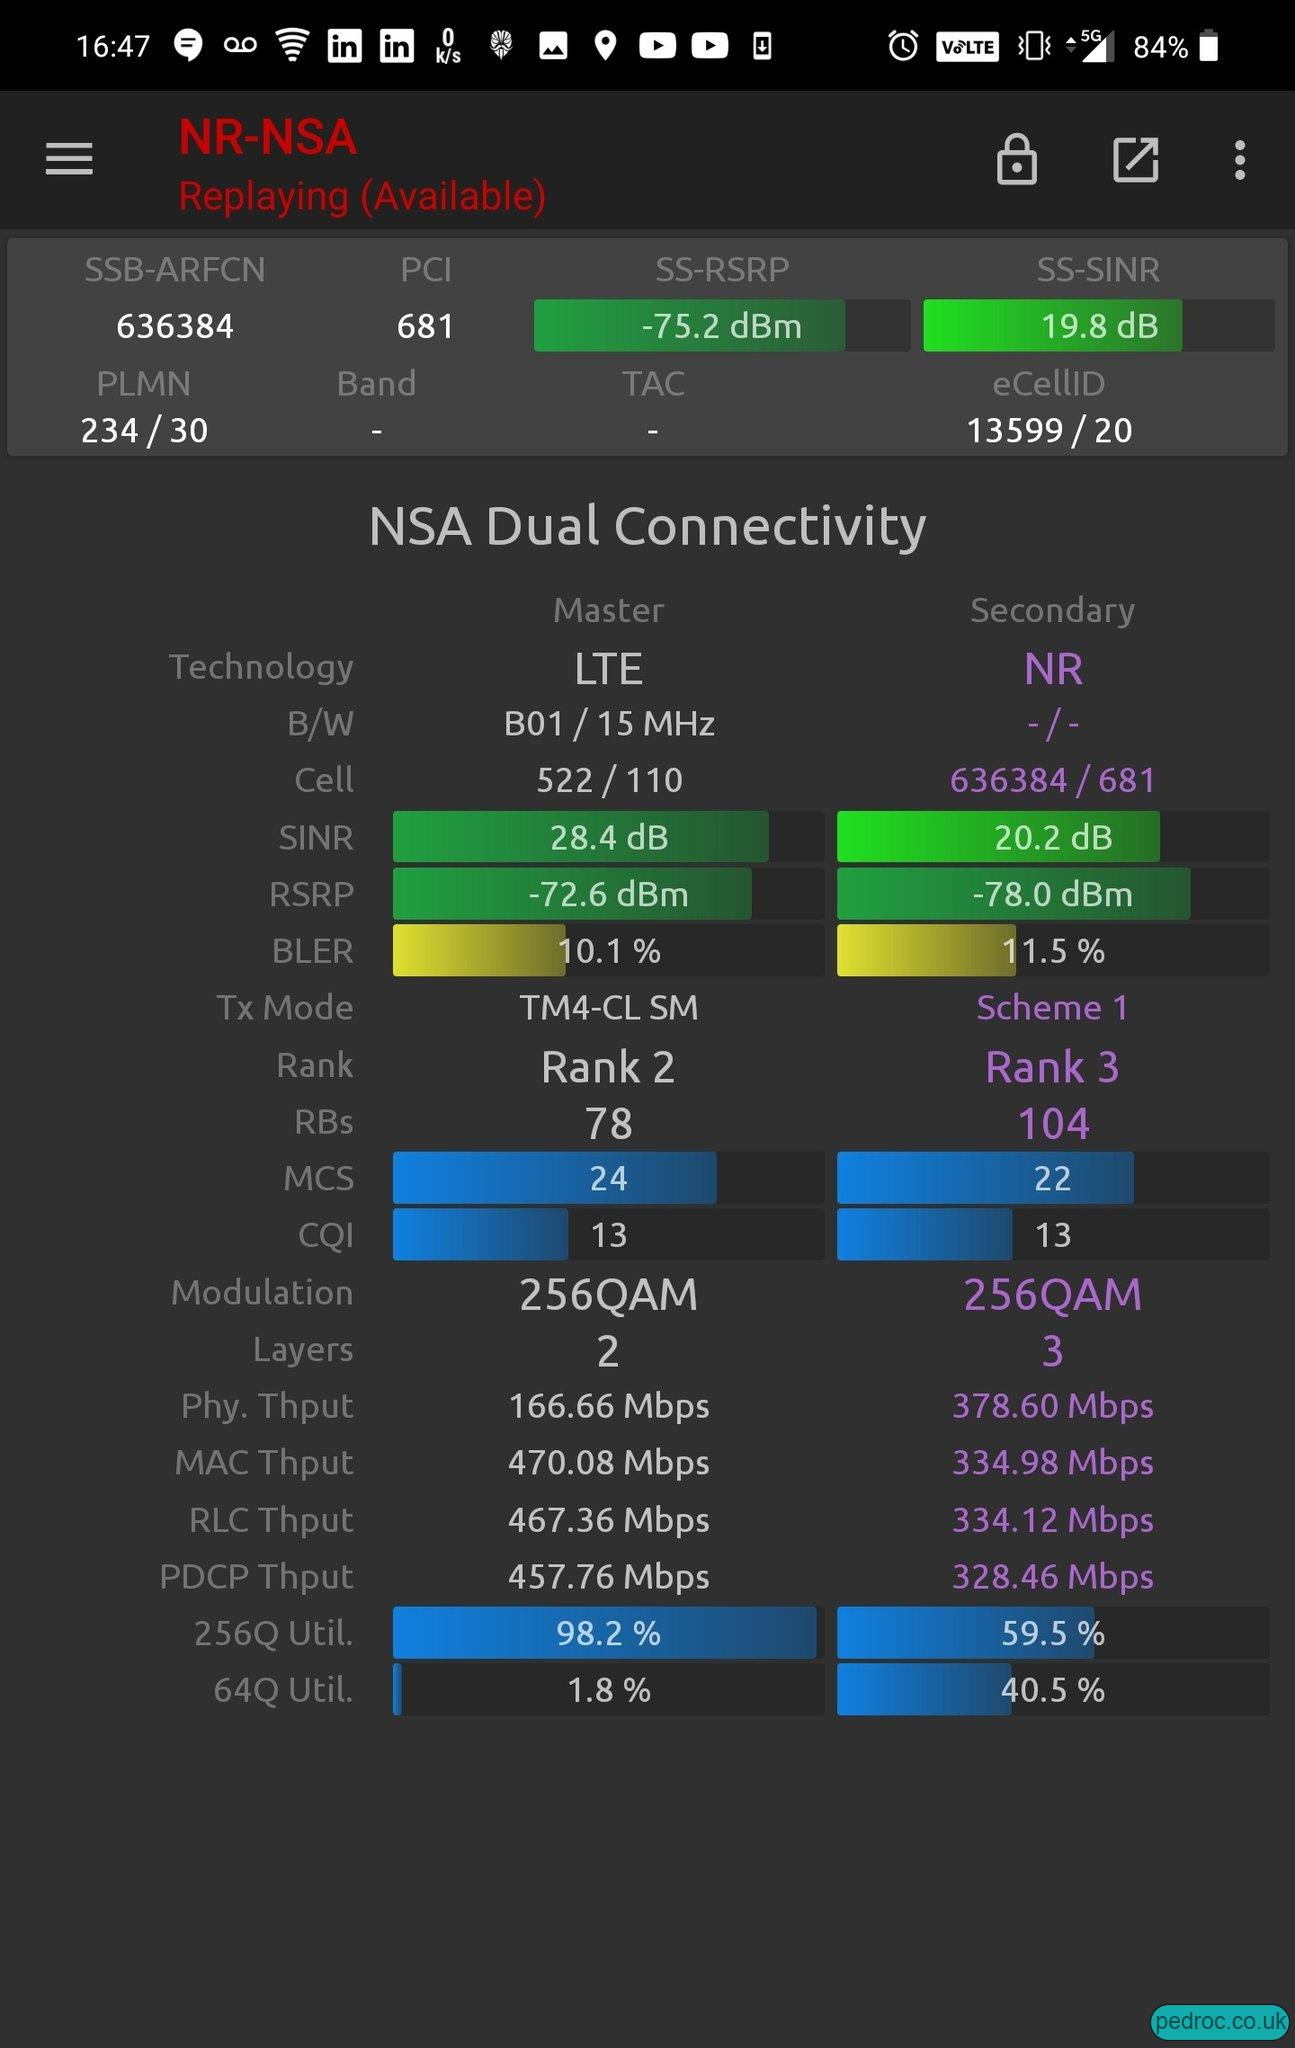 EN-DC 5G field test performance on the BT/EE Ericsson 5G site.